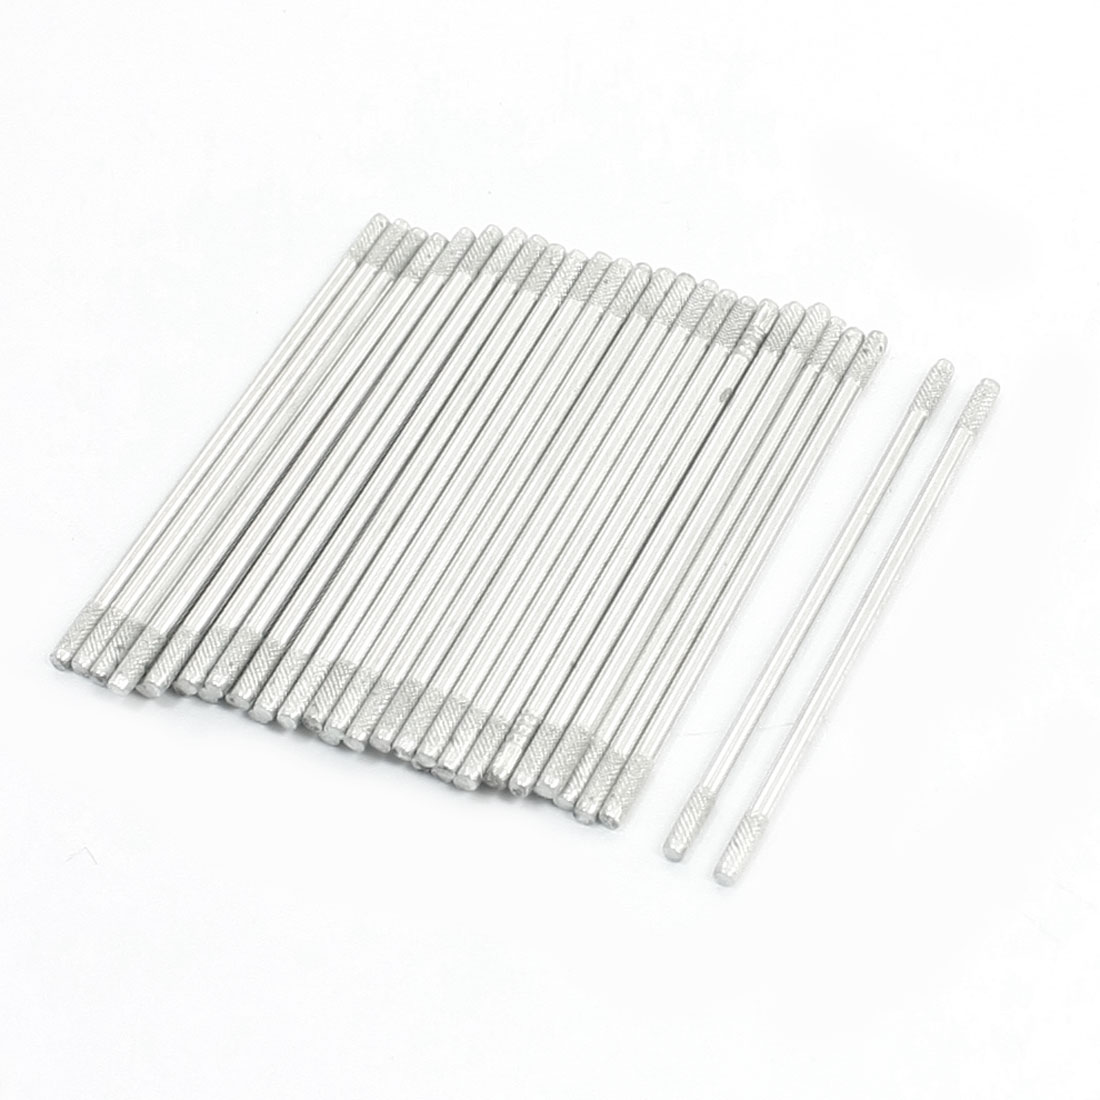 40PCS RC Toy Car Repairing Parts 42x1.5mm Stainless Steel Round Rod